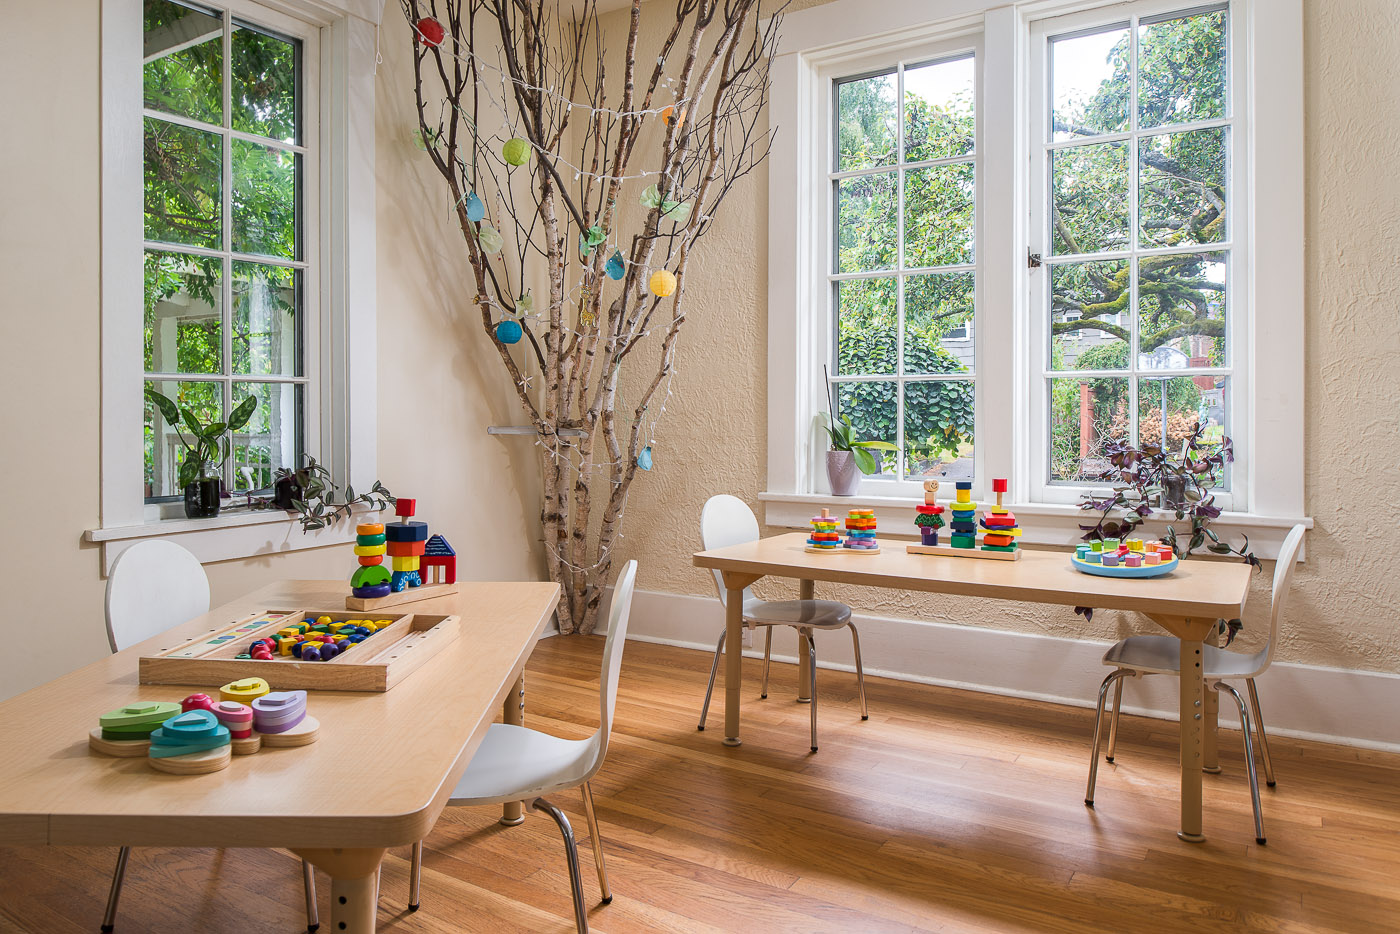 Preschool Room with birch logs, kids crafts and toys